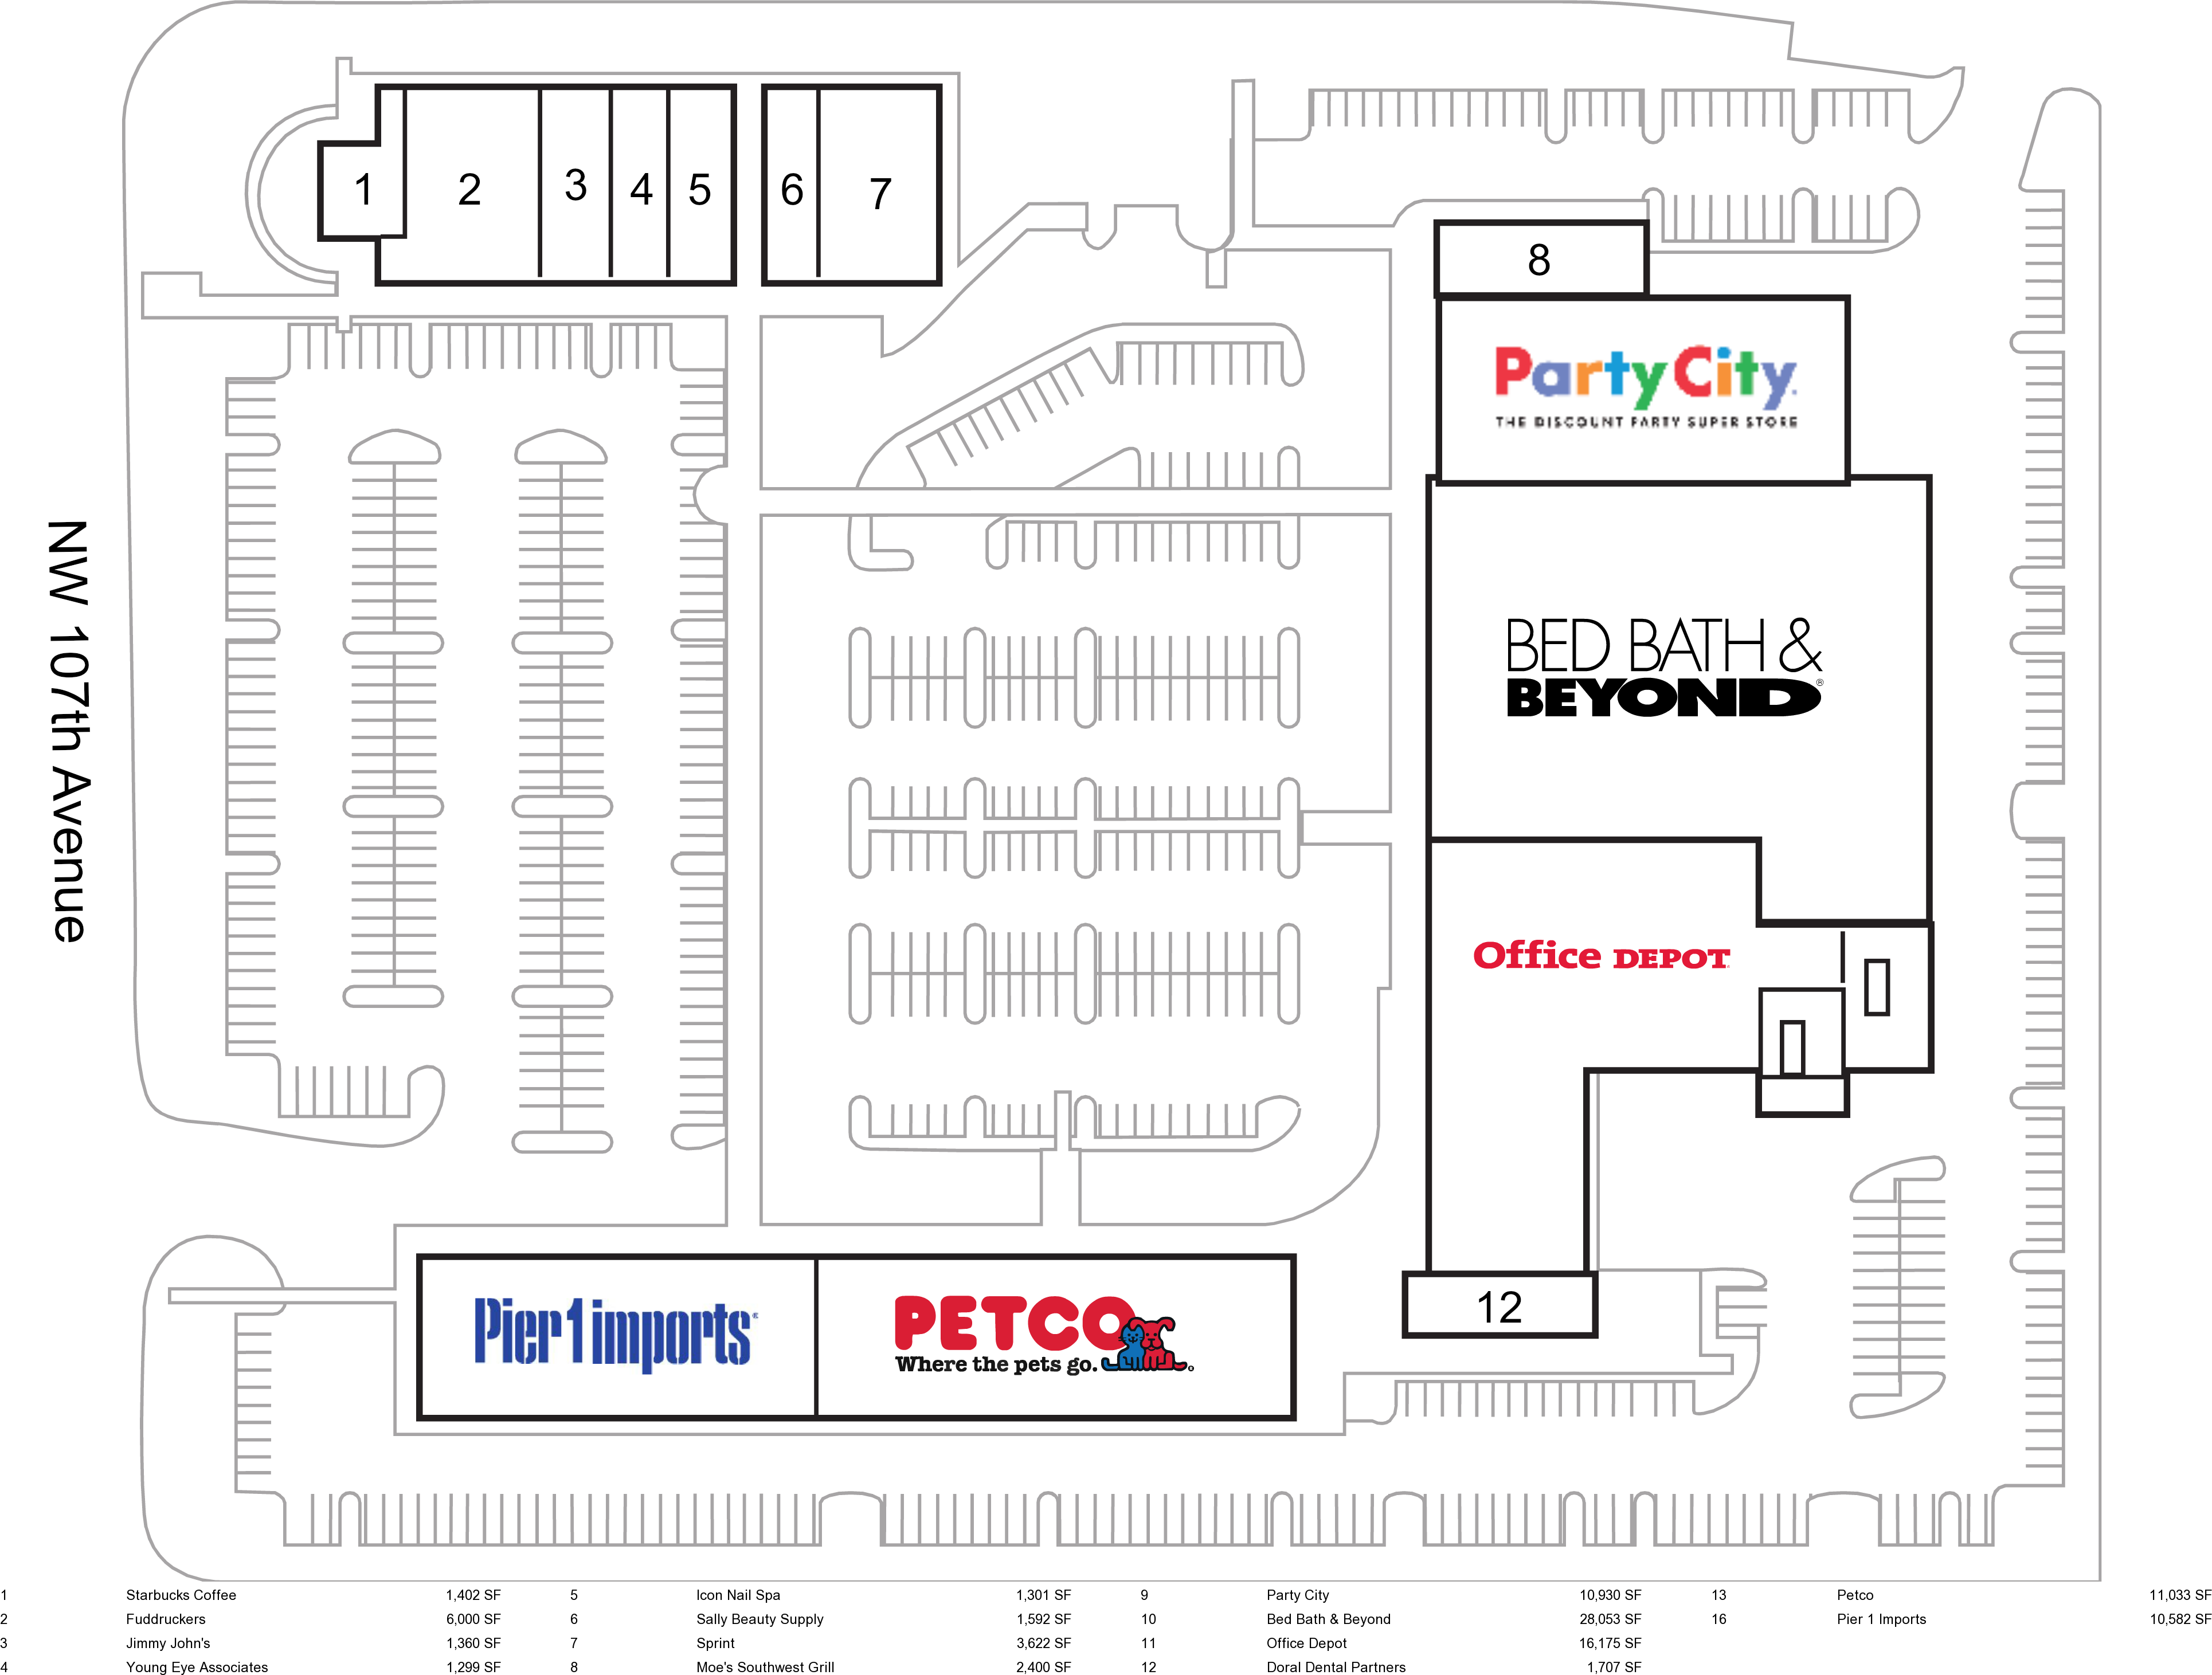 Bed bath and beyond lakewood - Bed Bath Beyond Plaza